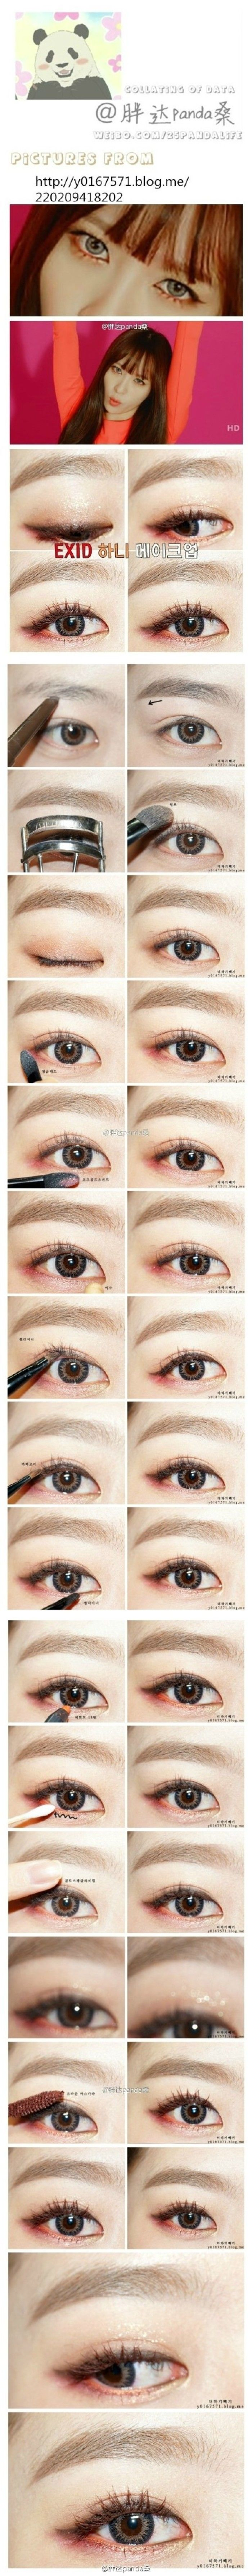 asian make up #ClassyLadyEntrpreneur #고급스러운레이디기업가 ✨✨www.SkincareInKorea.info…